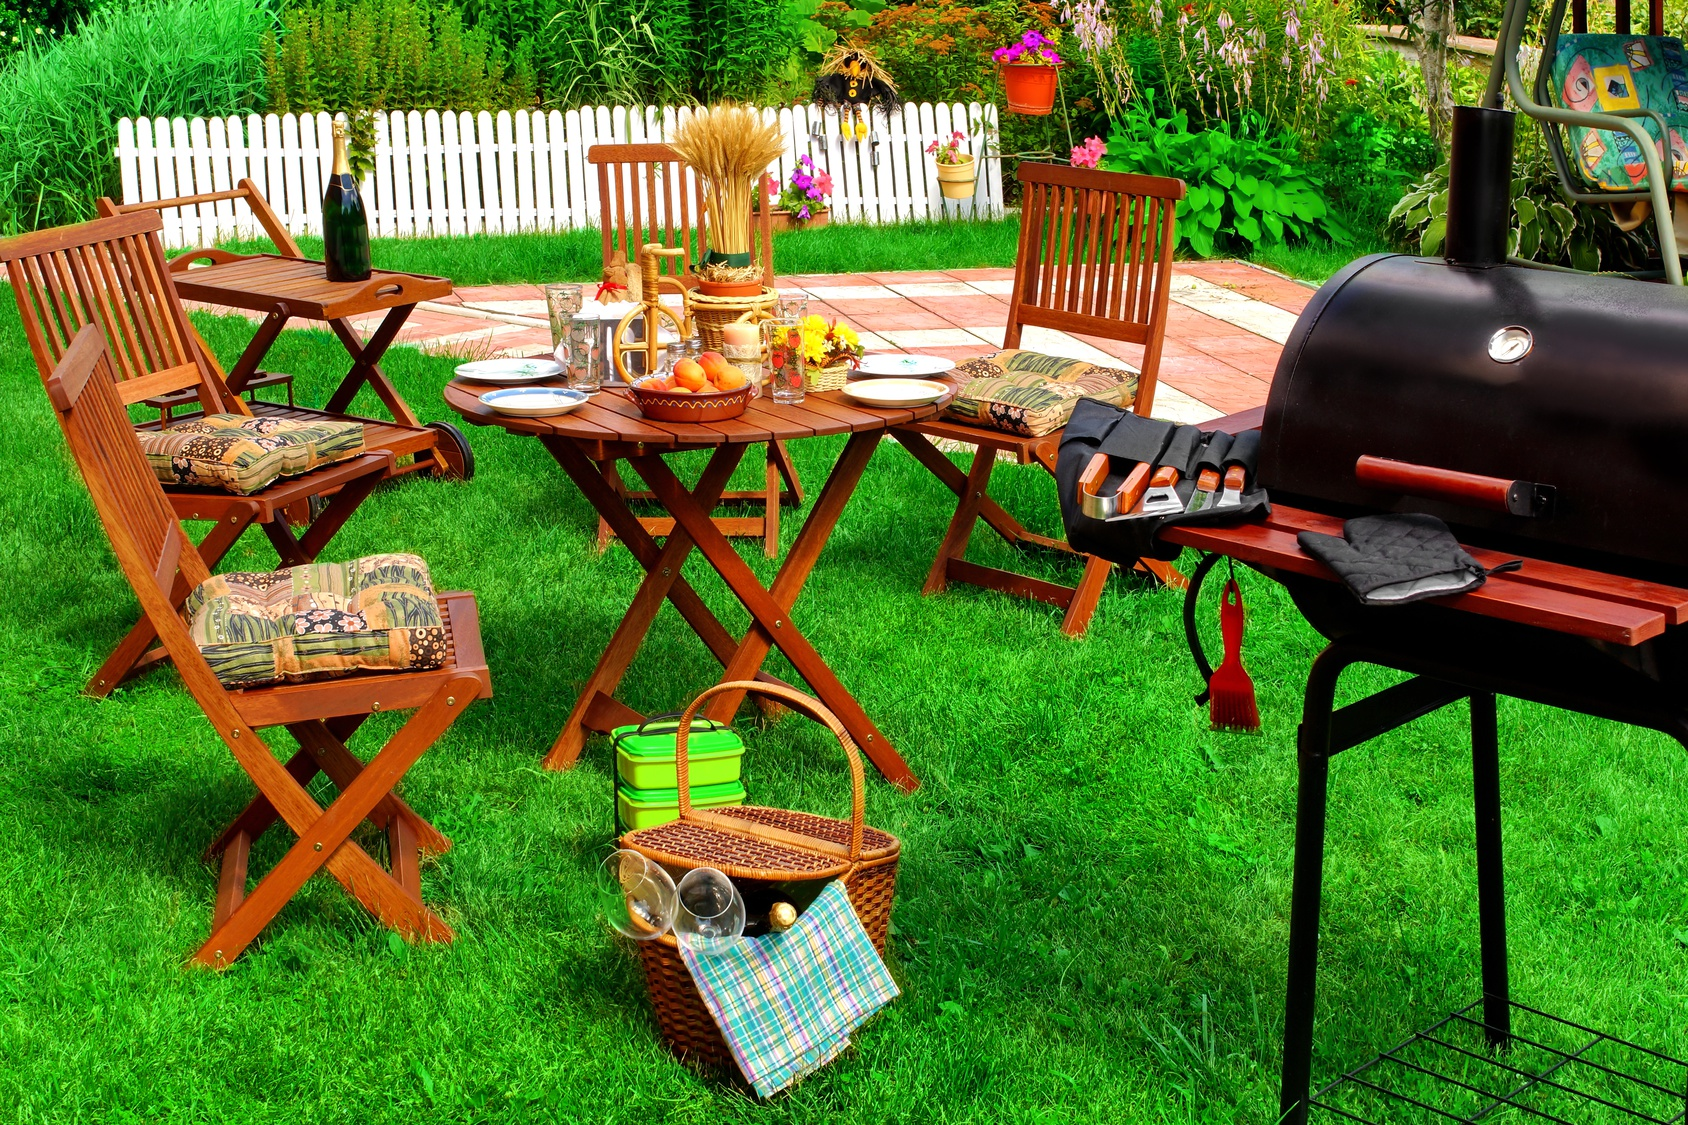 Aosom Com Nothing Less Than Awesome - Garden Furniture Clearance Hop Farm